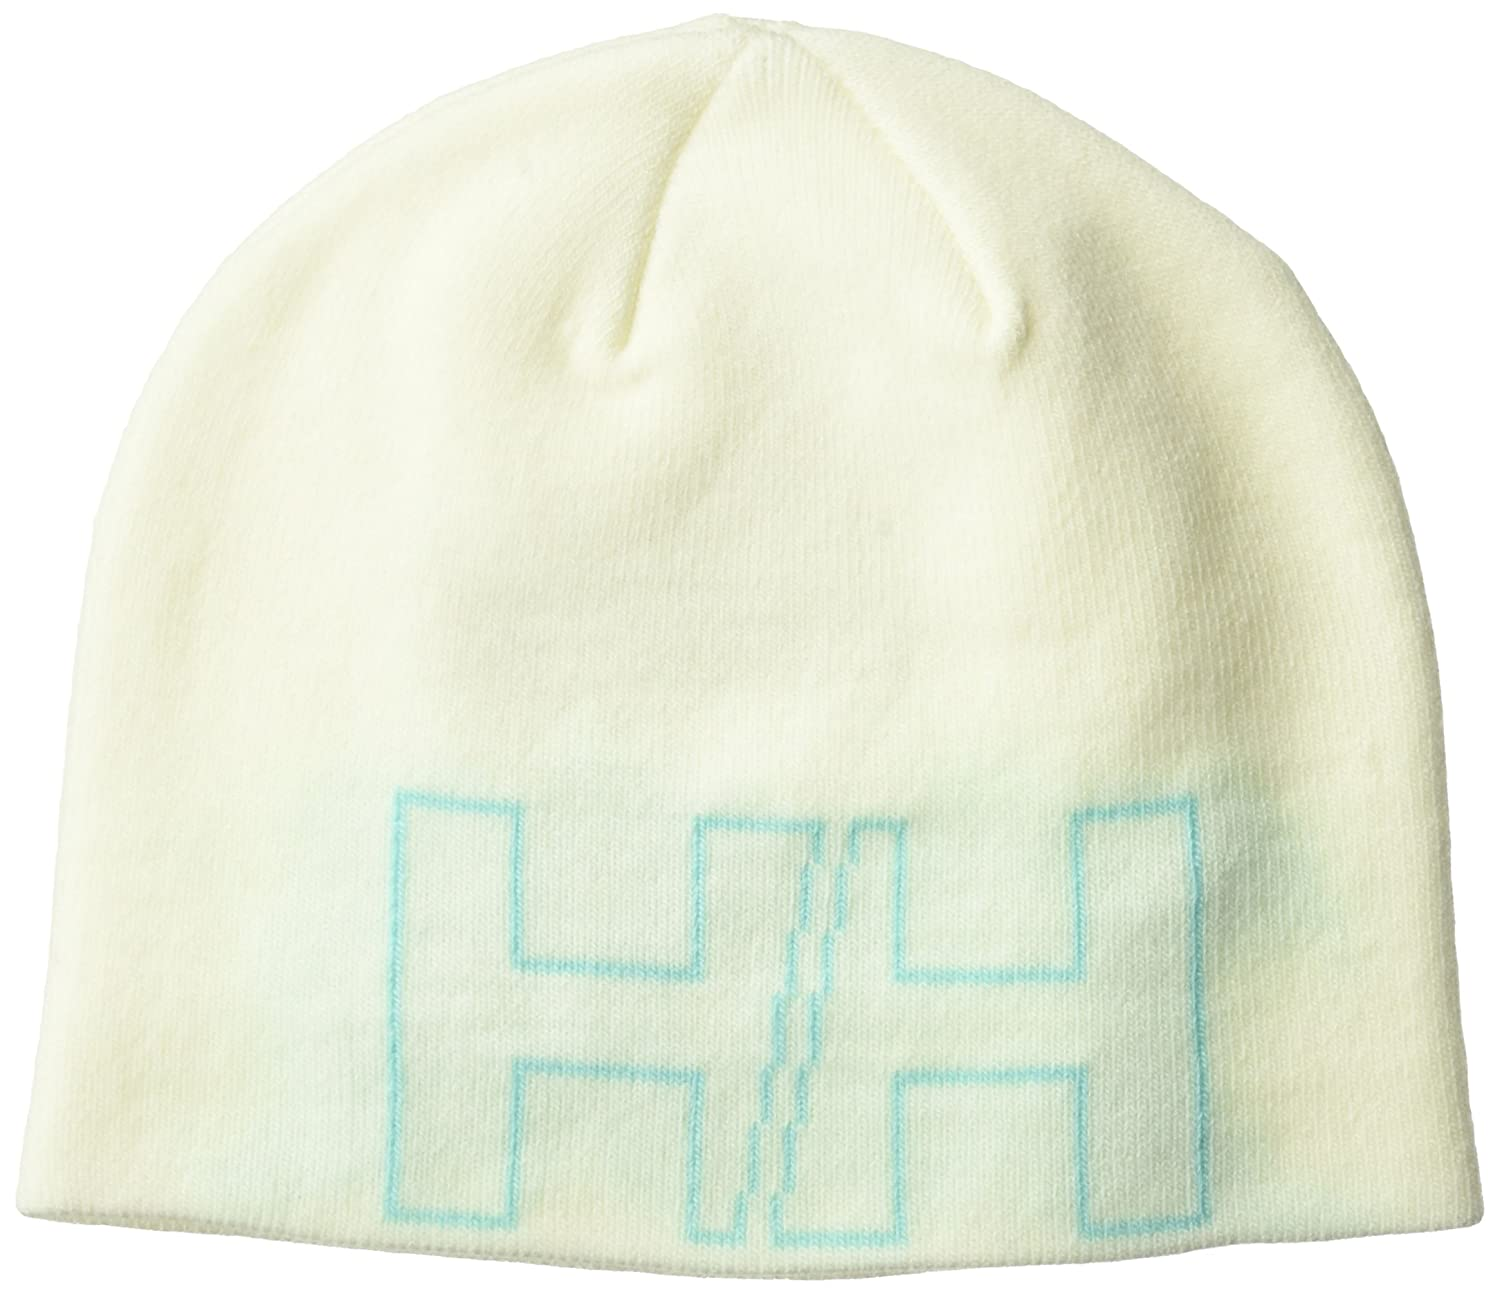 Helly Hansen Outline Beanie, Black, Standard 67147